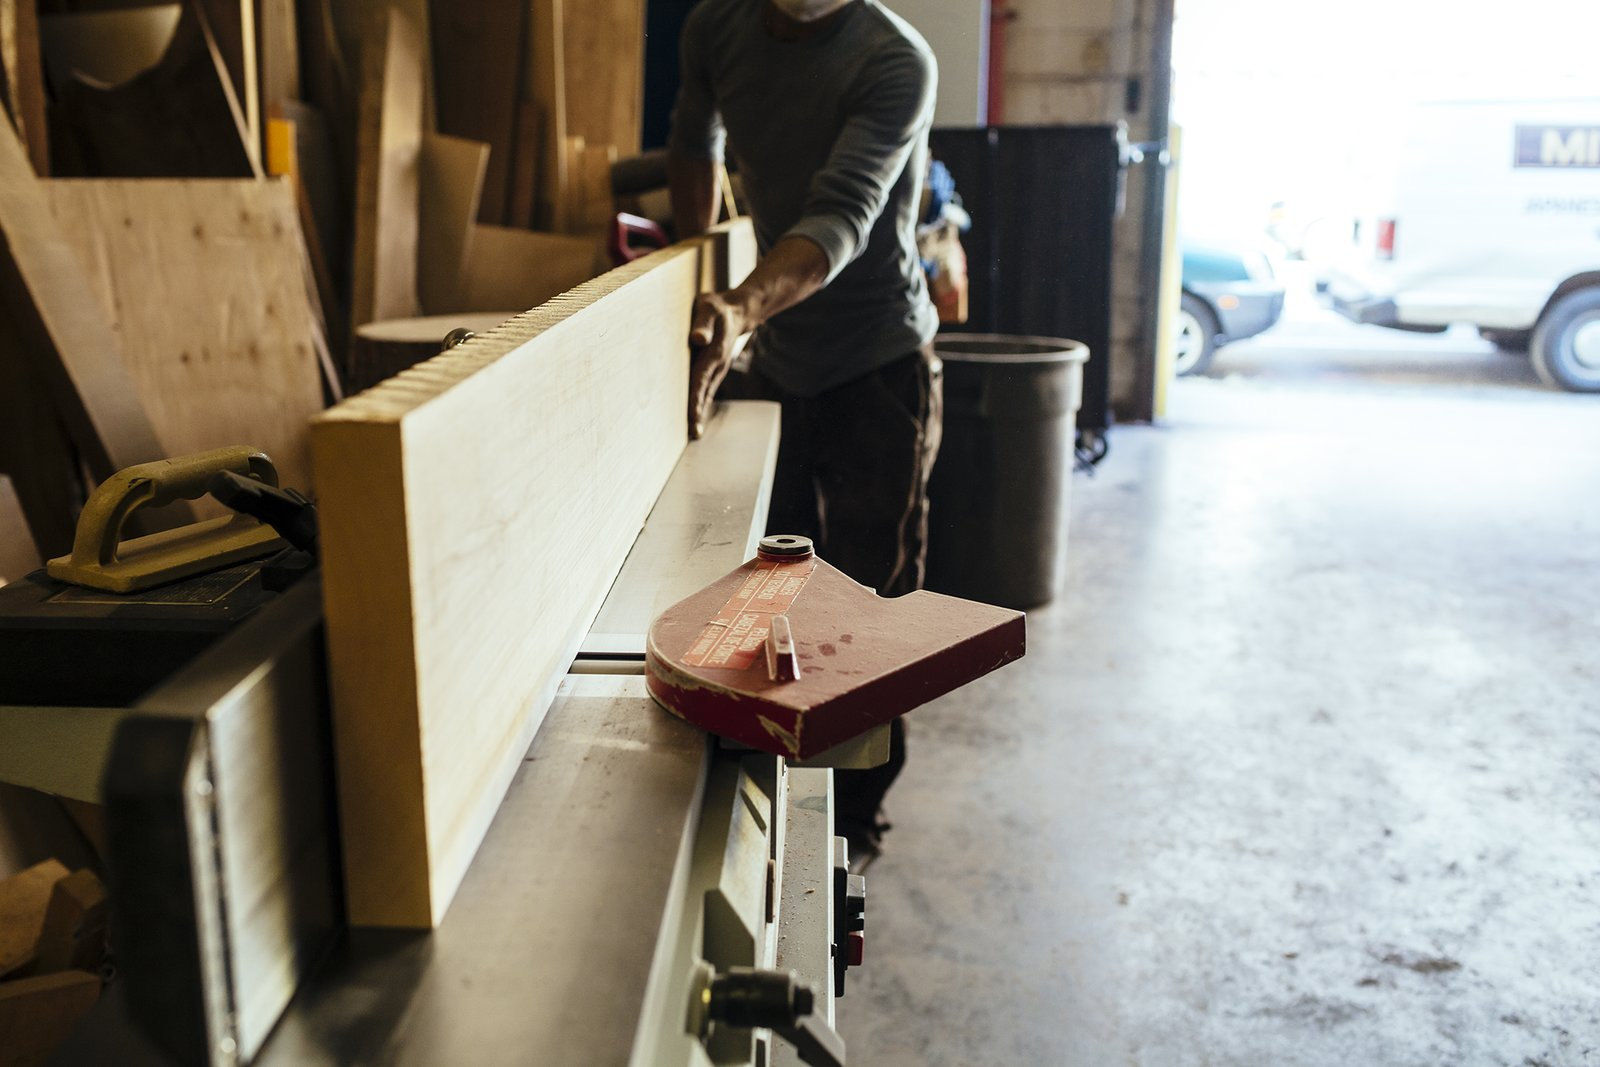 After selecting the lumber, craftsman Naotaka Hamada brings it to a jointer to ensure the wood is straight before cutting into smaller pieces with a table saw.  Photo 2 of 9 in How to Shape a Shoji, Step by Step